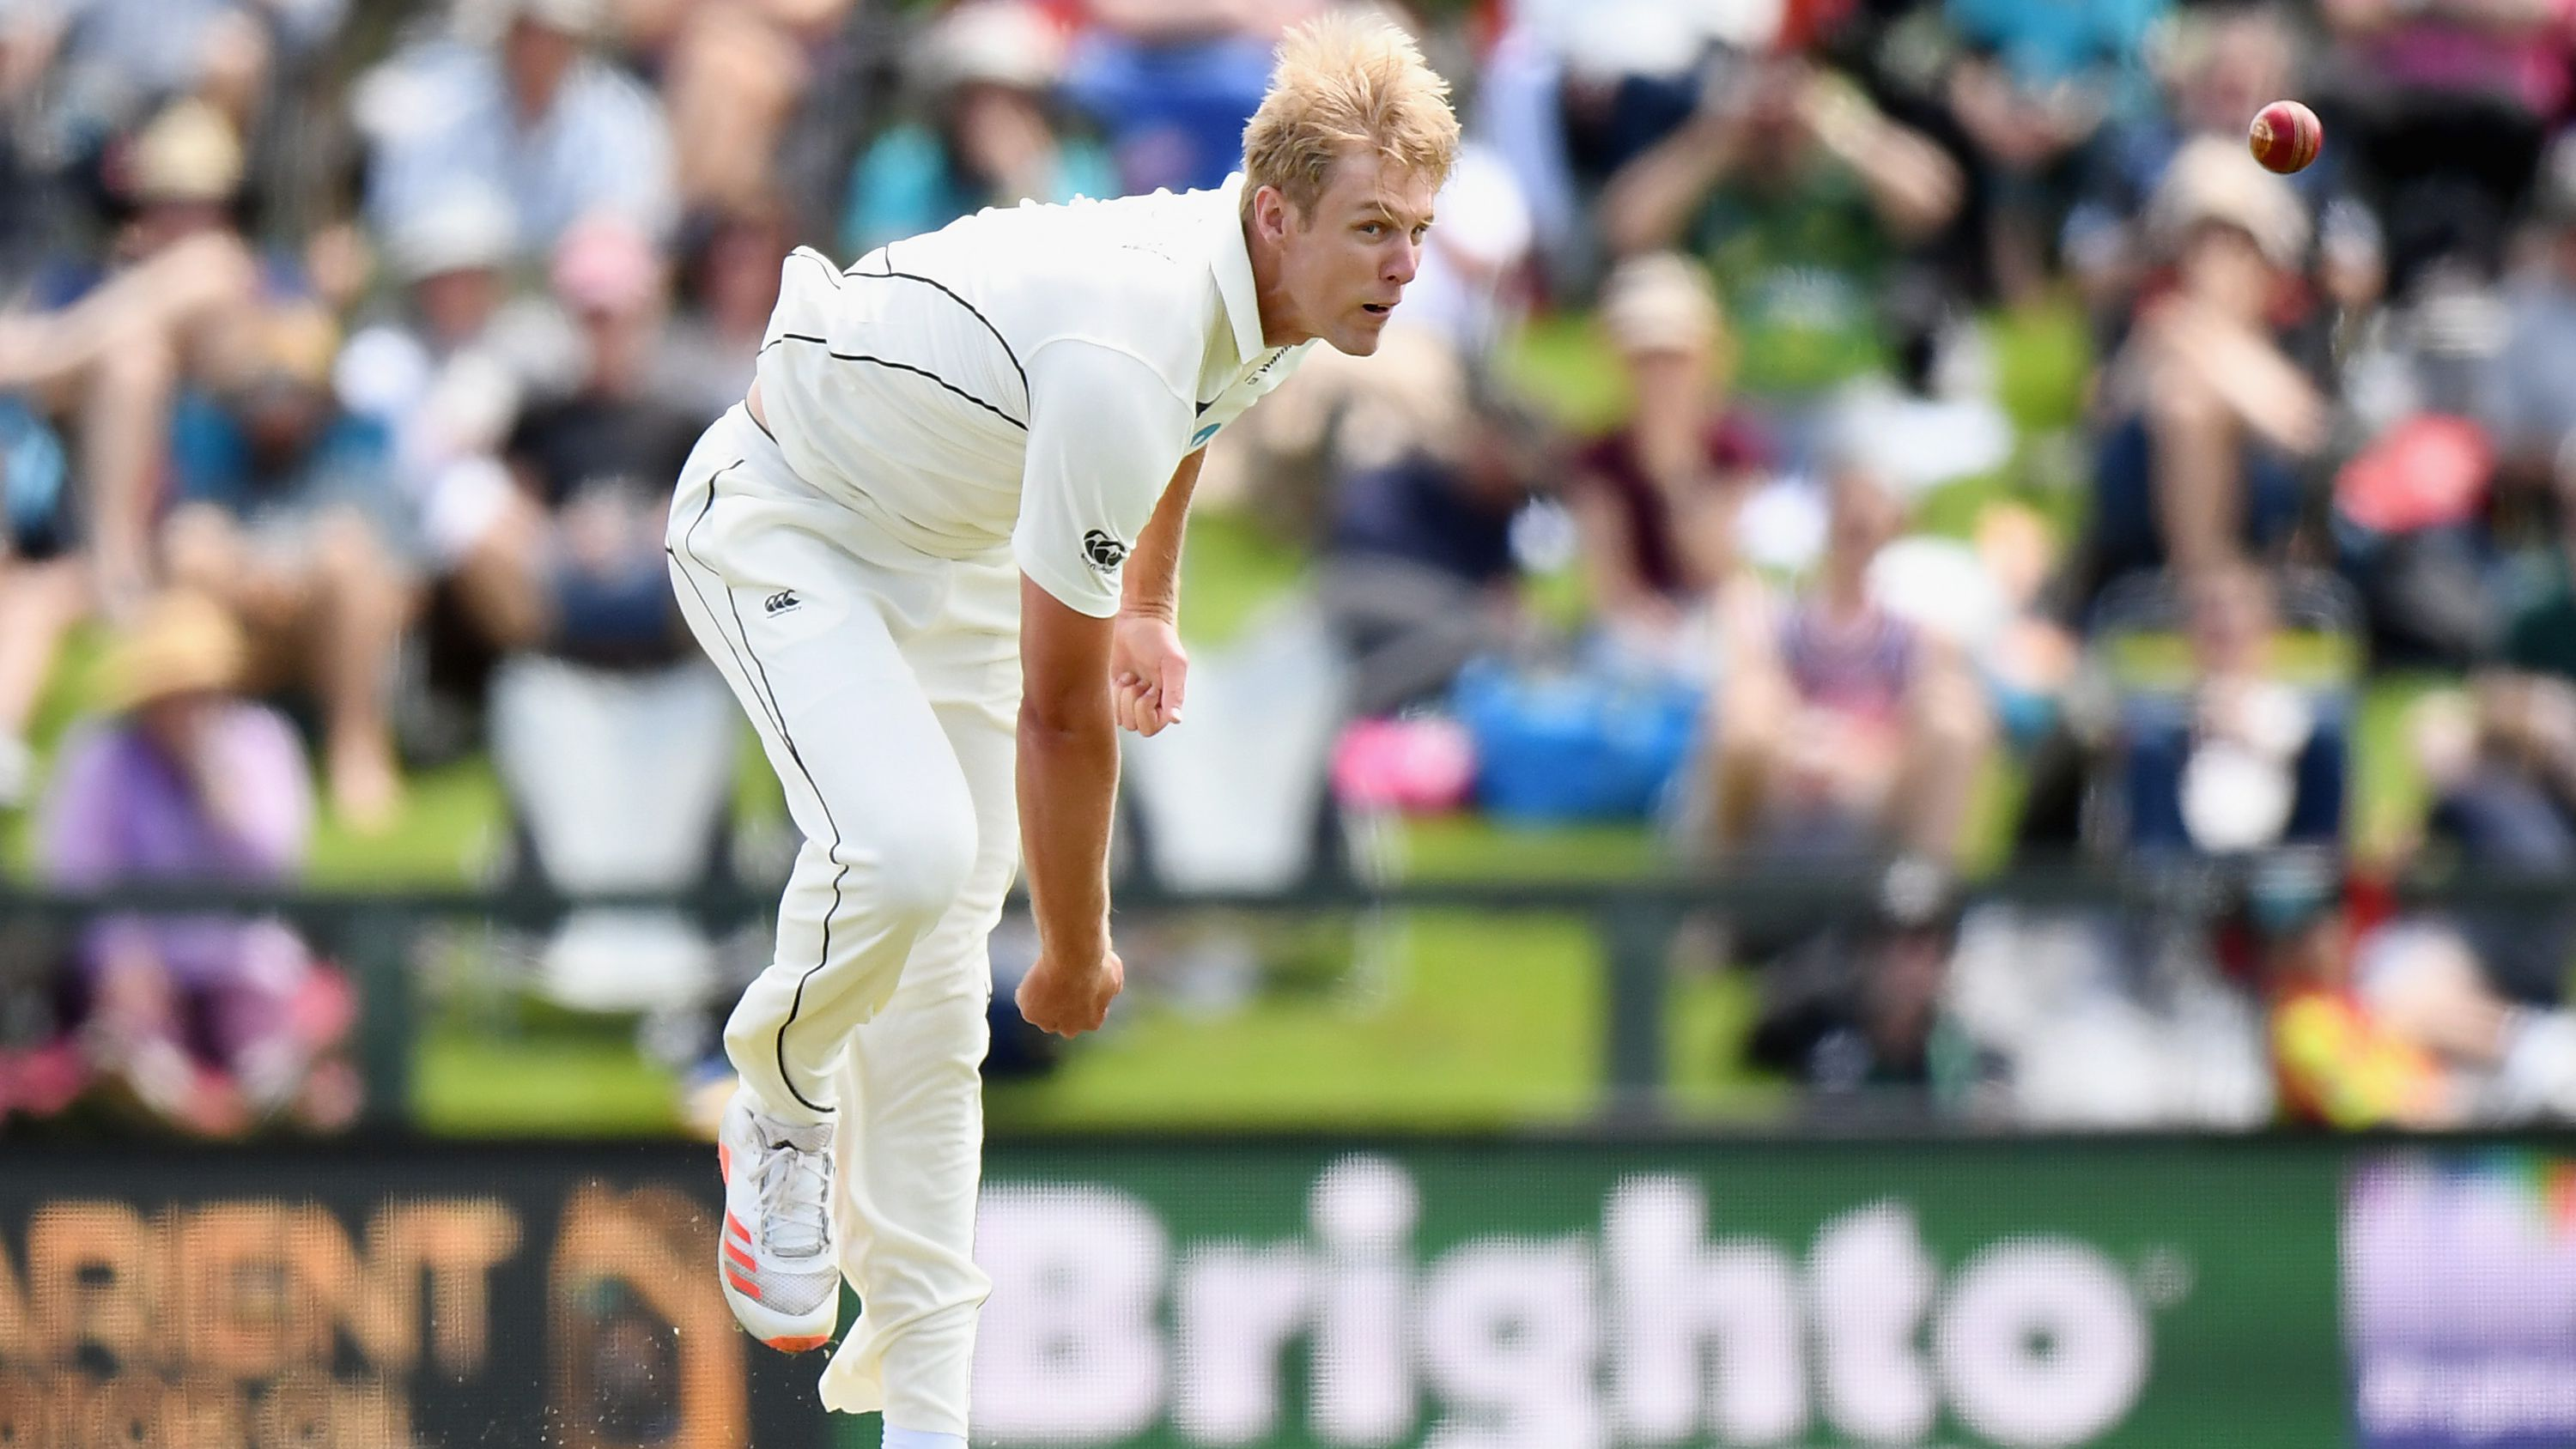 New Zealand paceman Kyle Jamieson takes 5-69 as Pakistan's first innings ends at 297